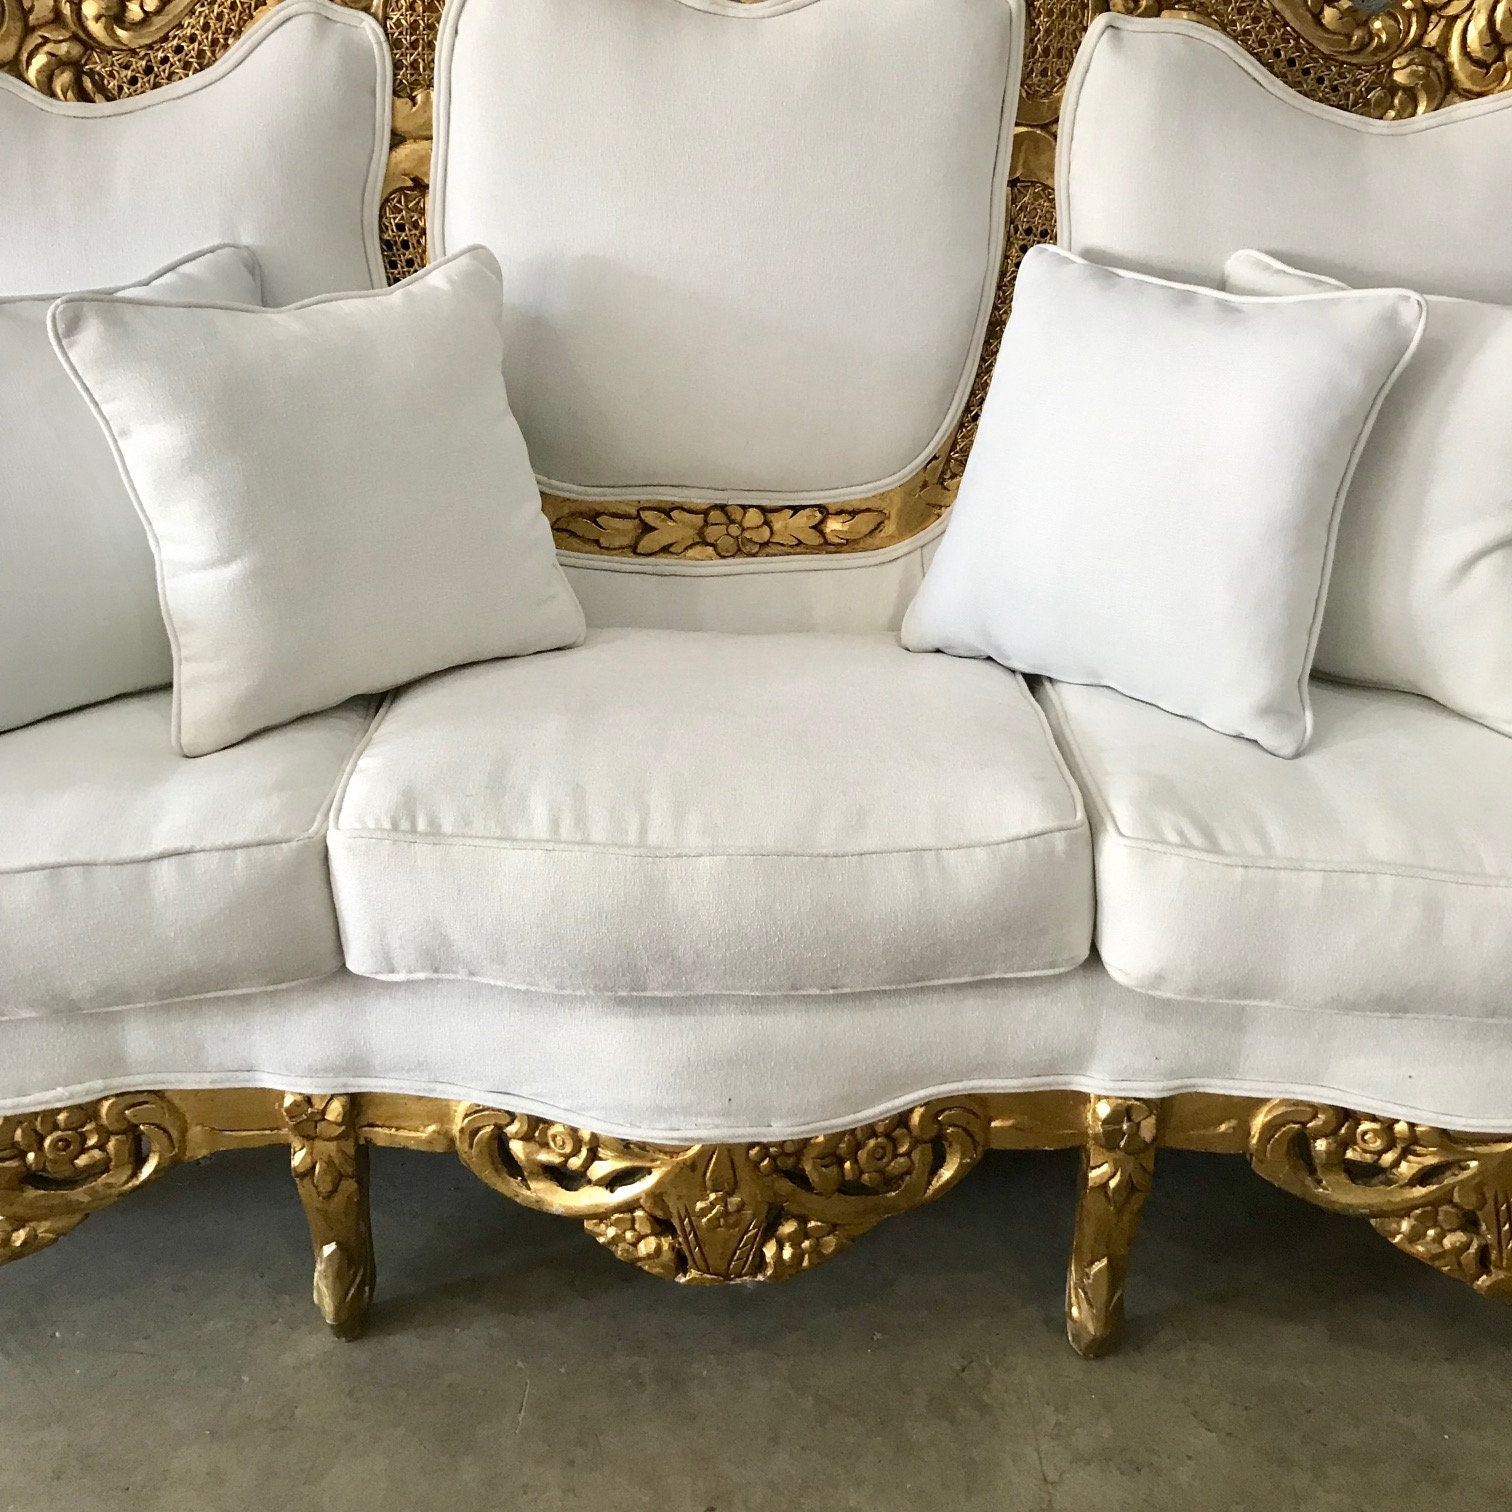 Outstanding Baroque Sofa Throne Furniture Rococo Sofa French Furniture Home Interior And Landscaping Dextoversignezvosmurscom